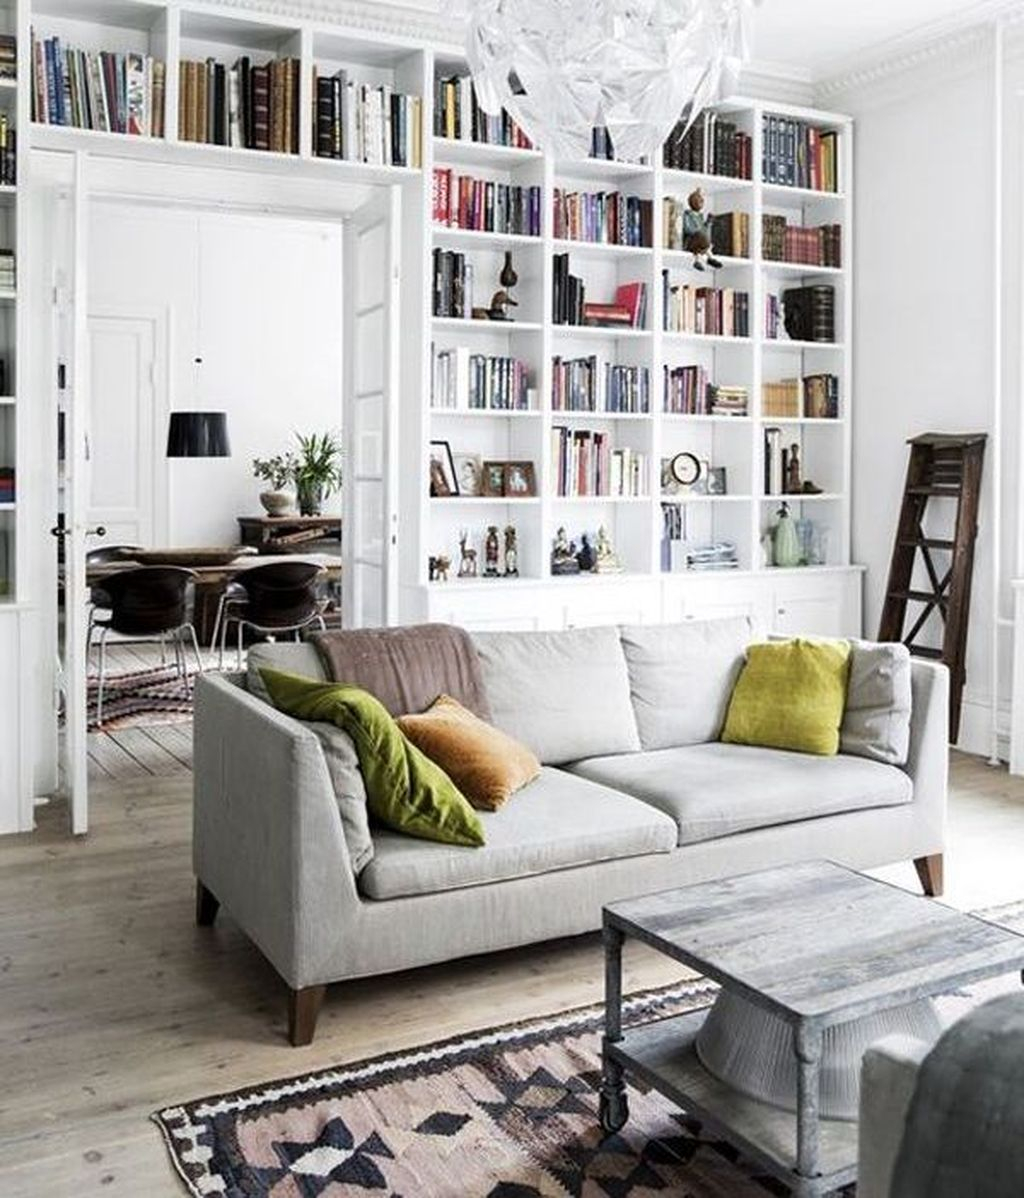 Smart Library Design Ideas For Home To Add To Your List 21